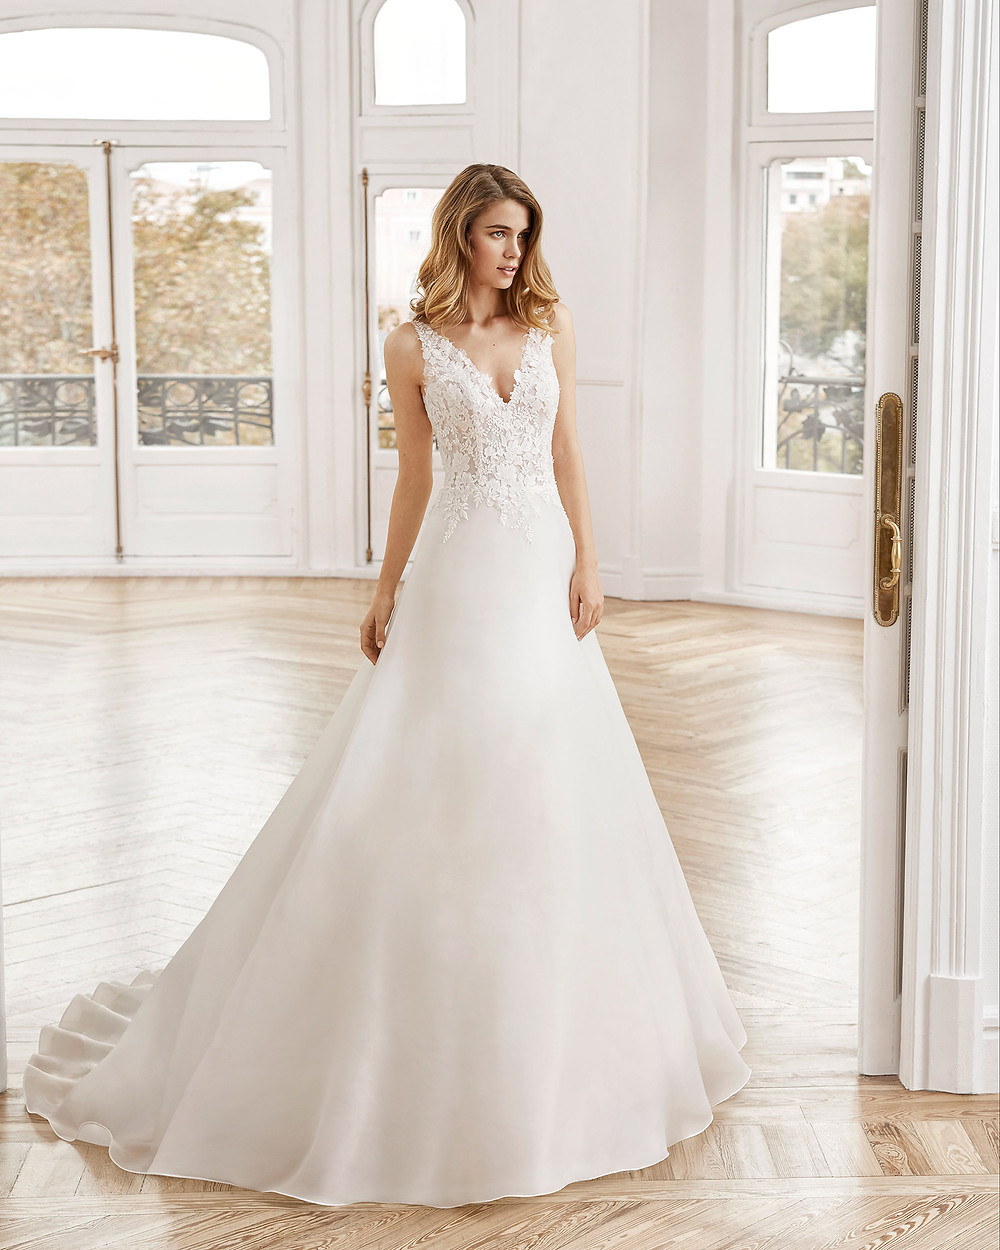 An Aire Barcelona 2020 lace and chiffon A-line wedding dress with a v neckline